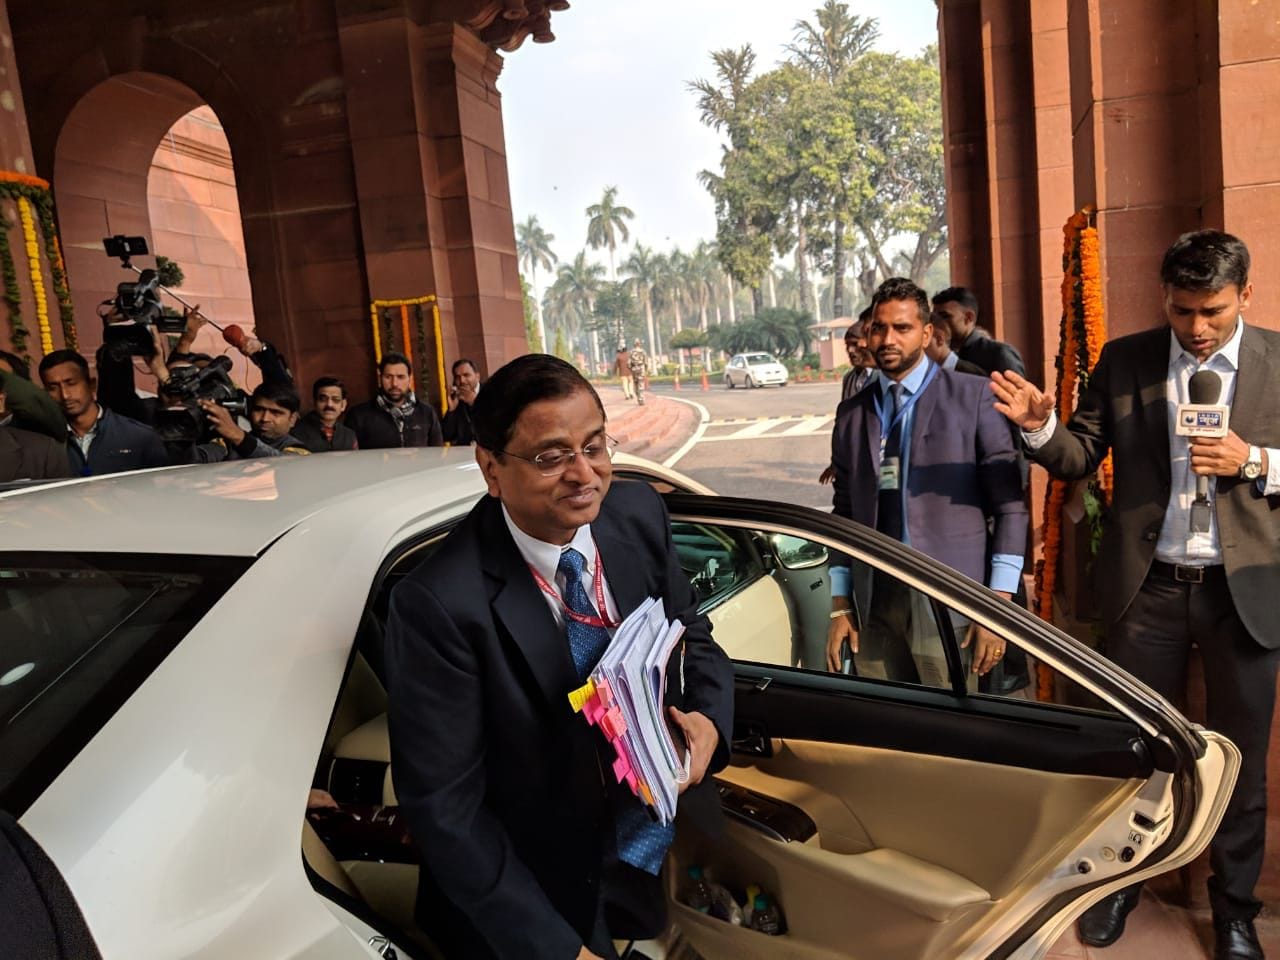 Economic affairs secretary Subhash Chandra Garg arrive at the Parliament. Friday, February 1, 2019.